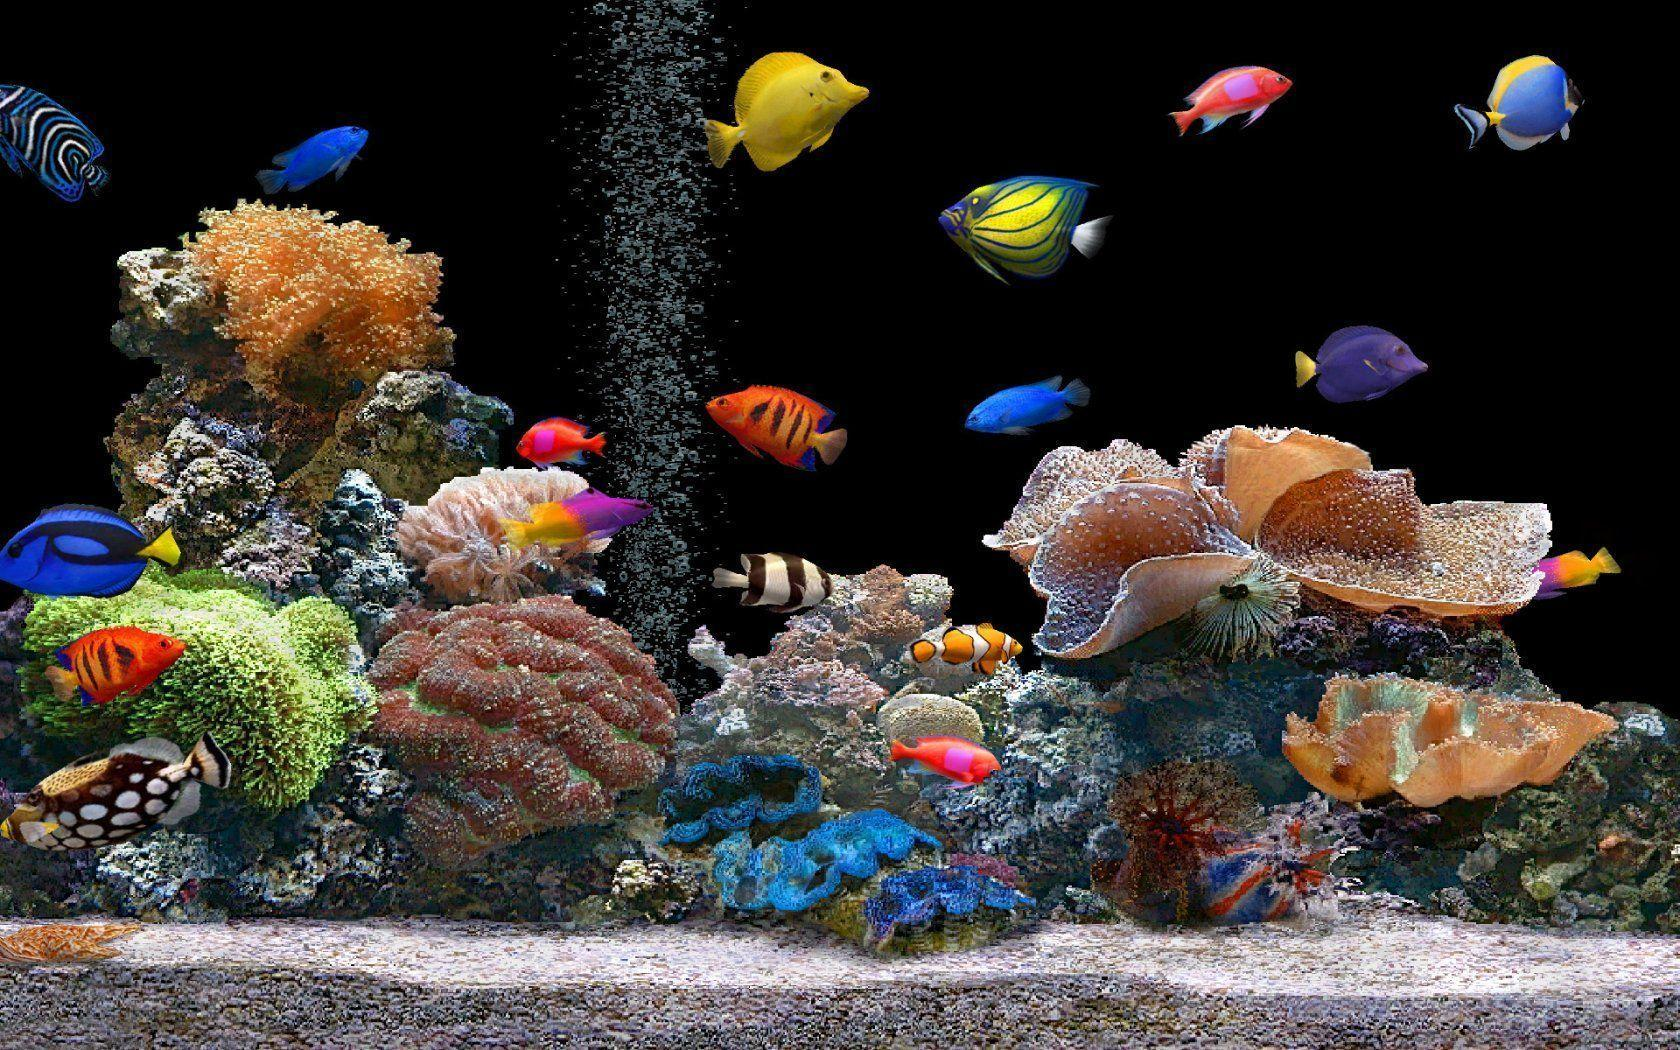 aquarium wallpaper hd - photo #19